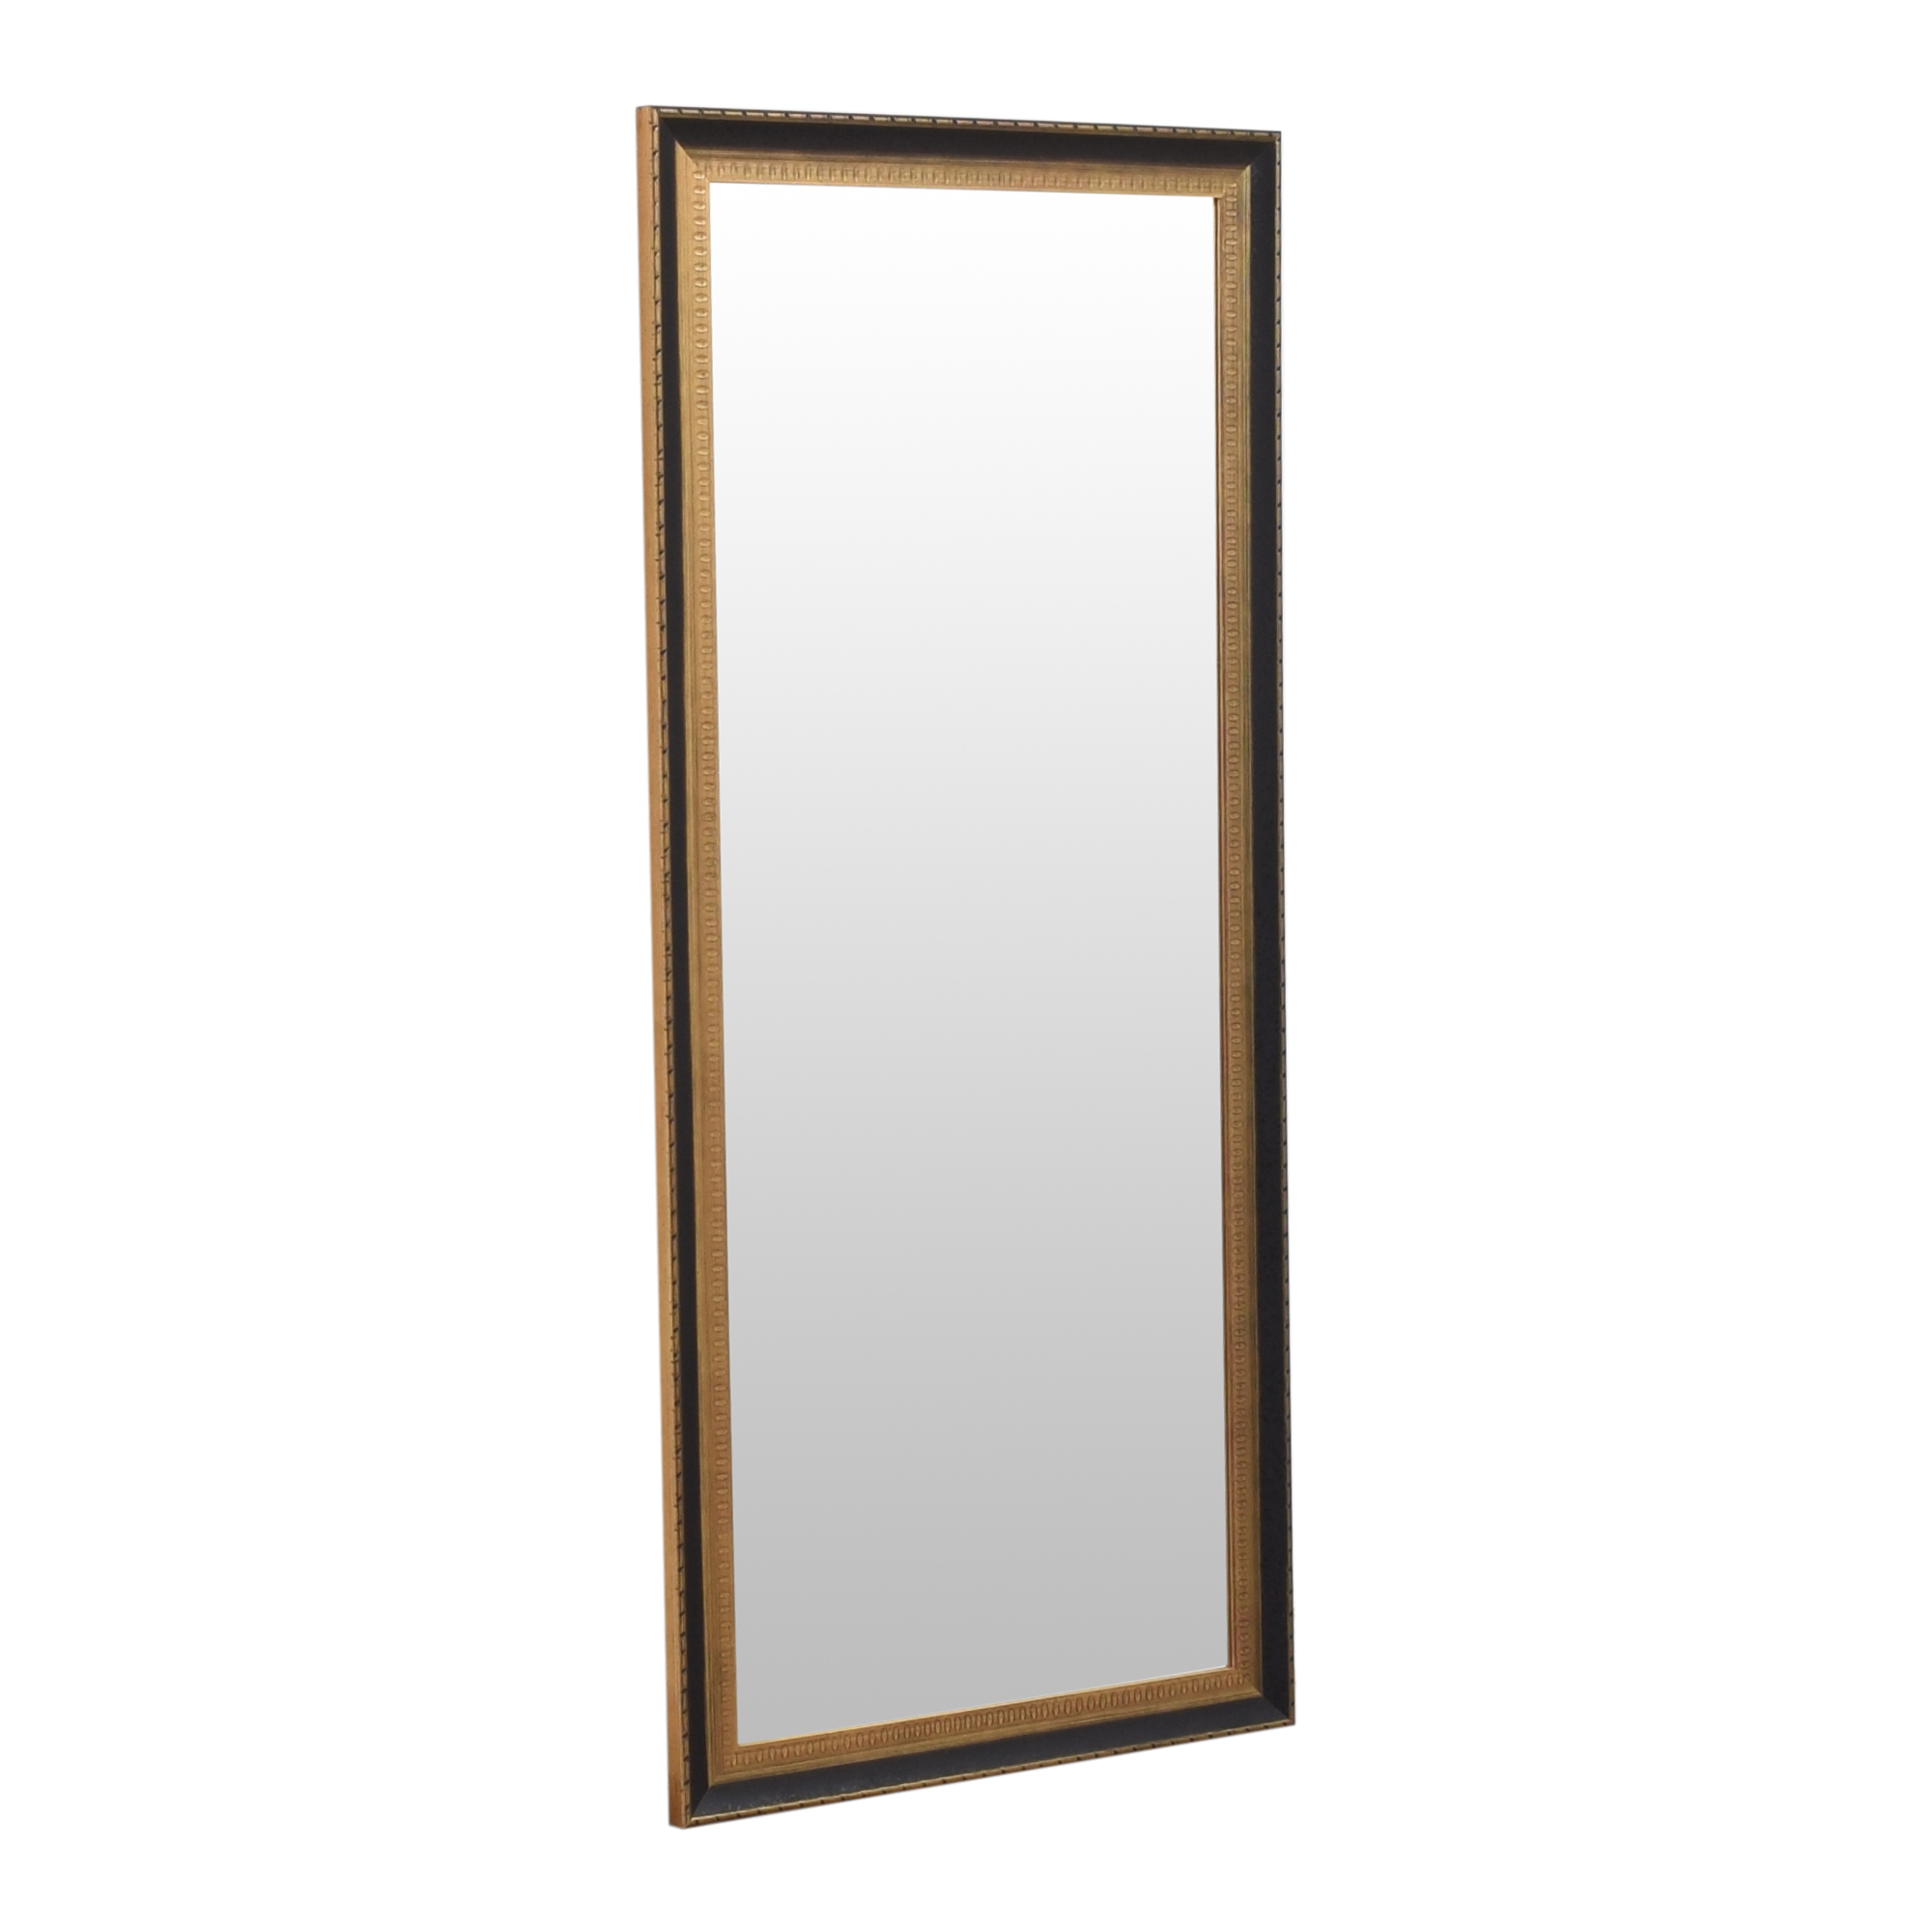 Framed Tall Mirror for sale